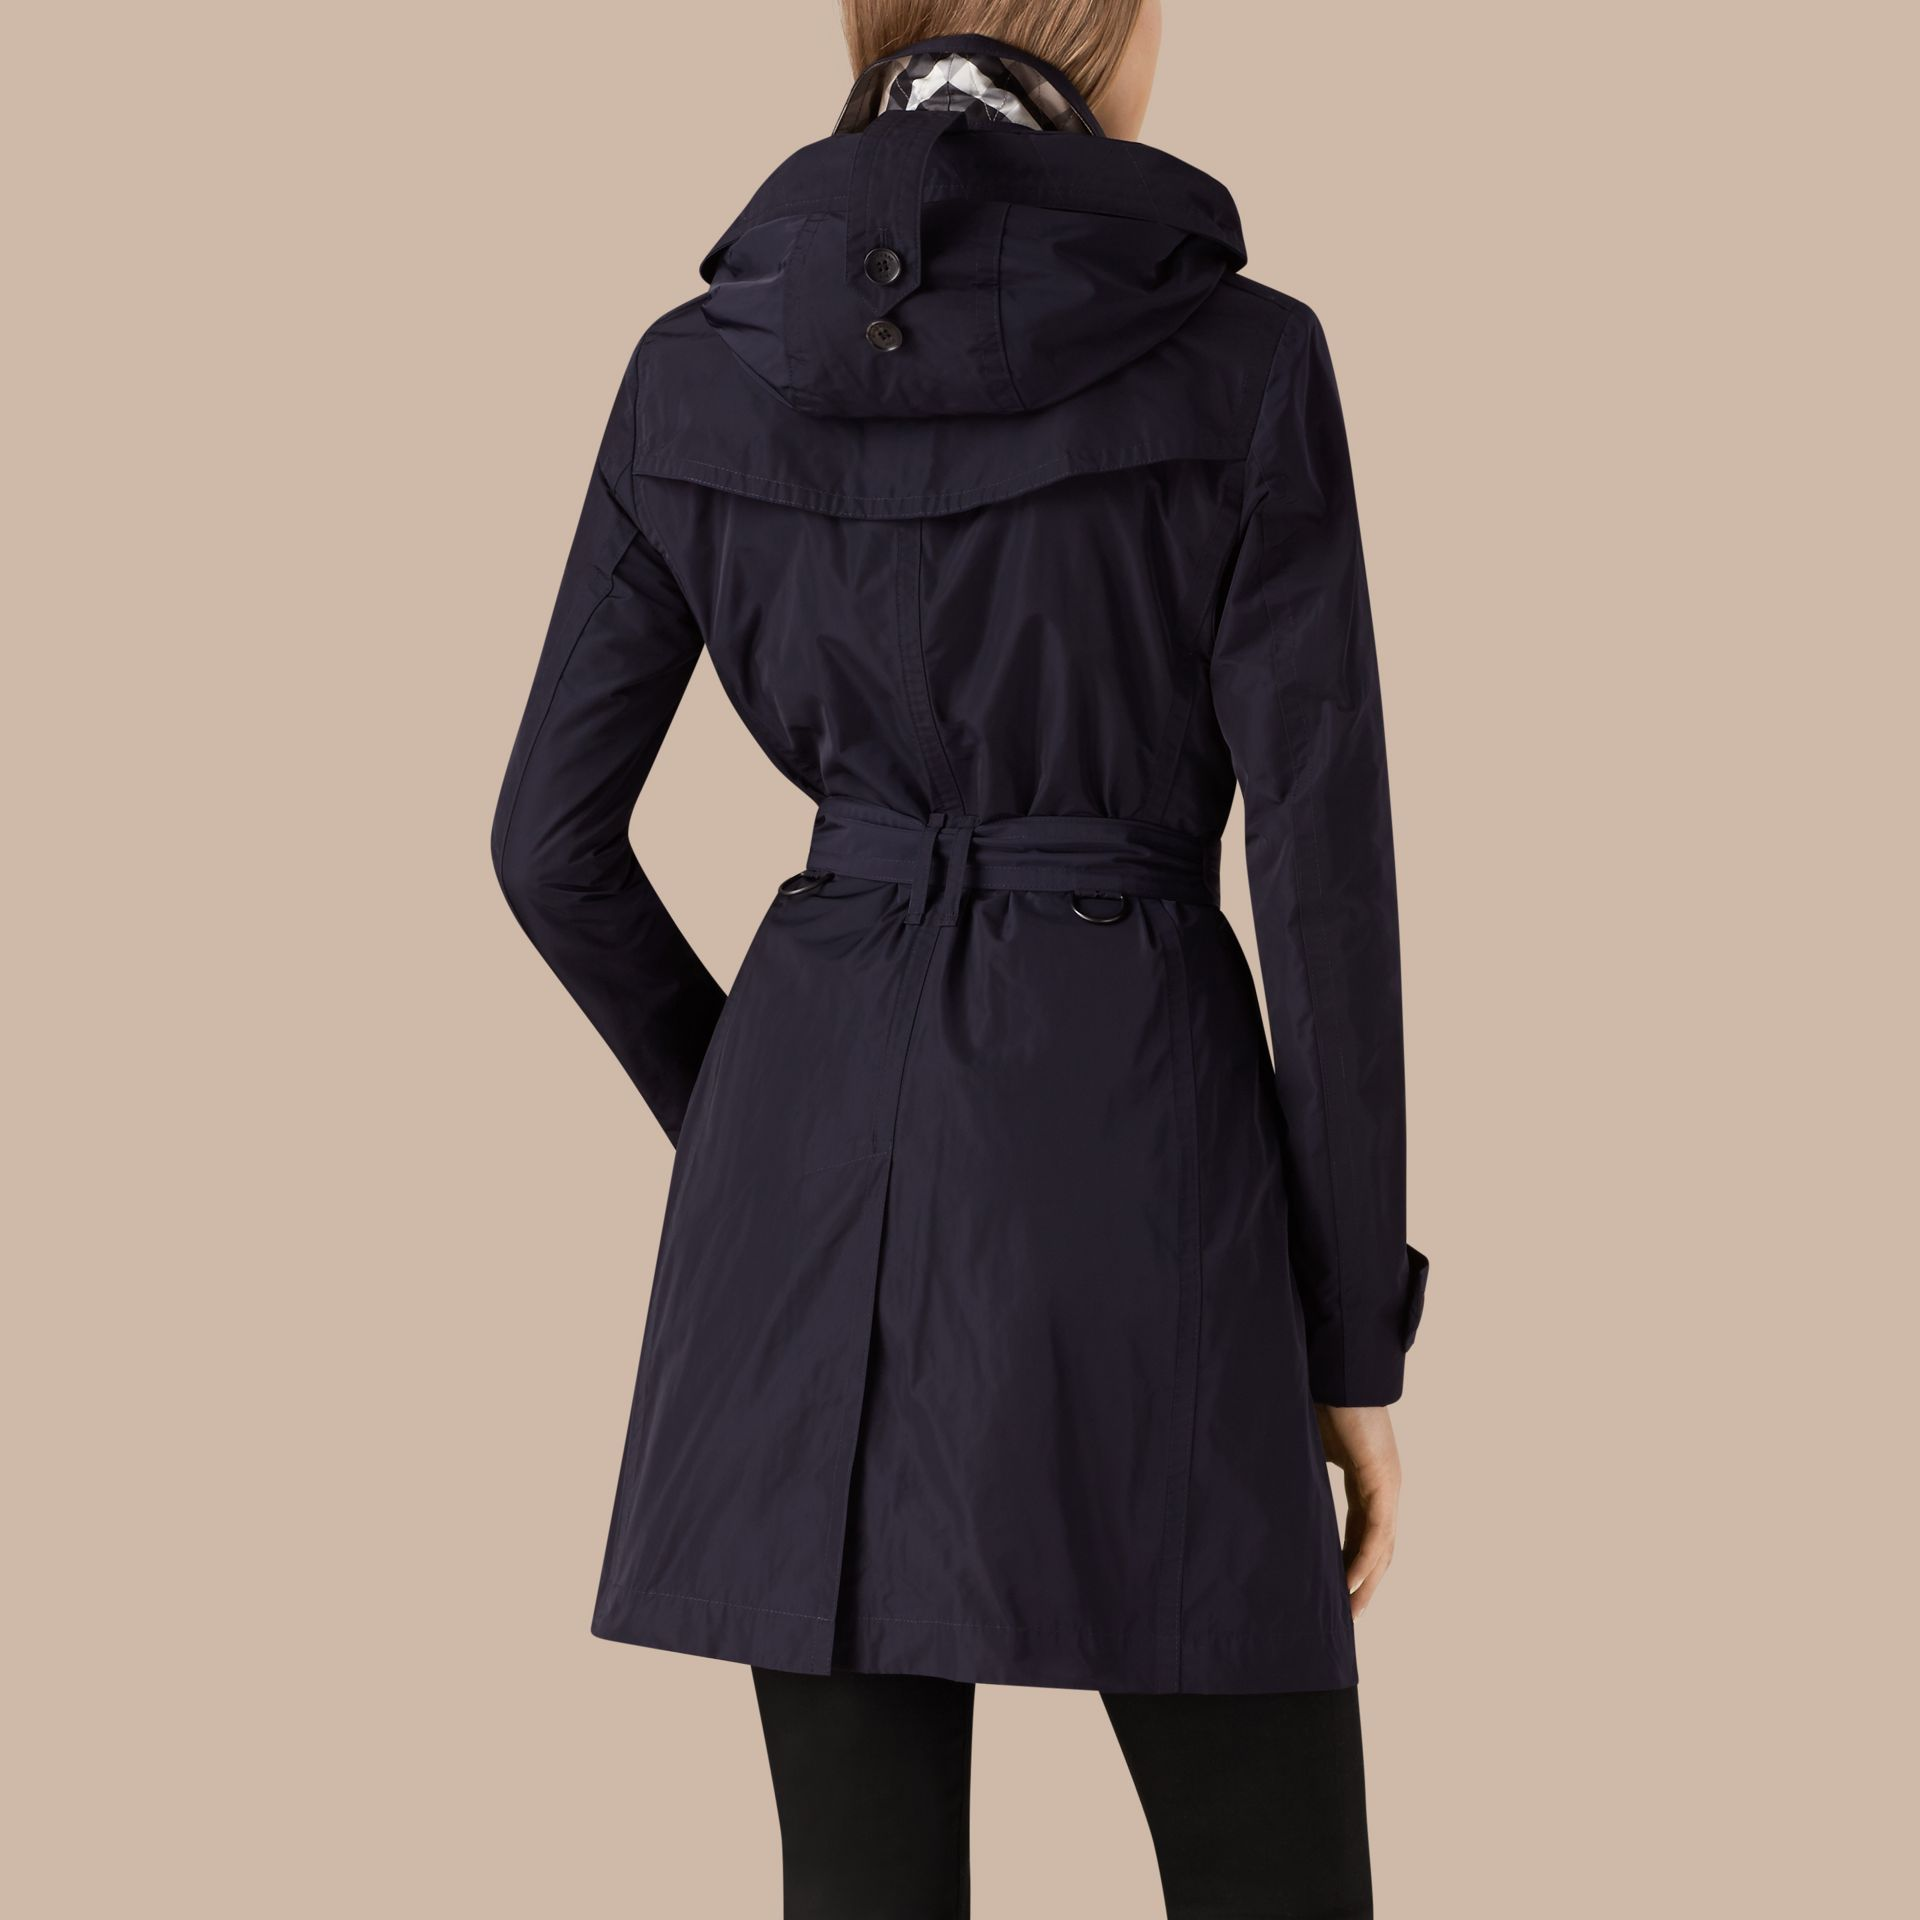 Navy Taffeta Trench Coat with Detachable Hood Navy - gallery image 3